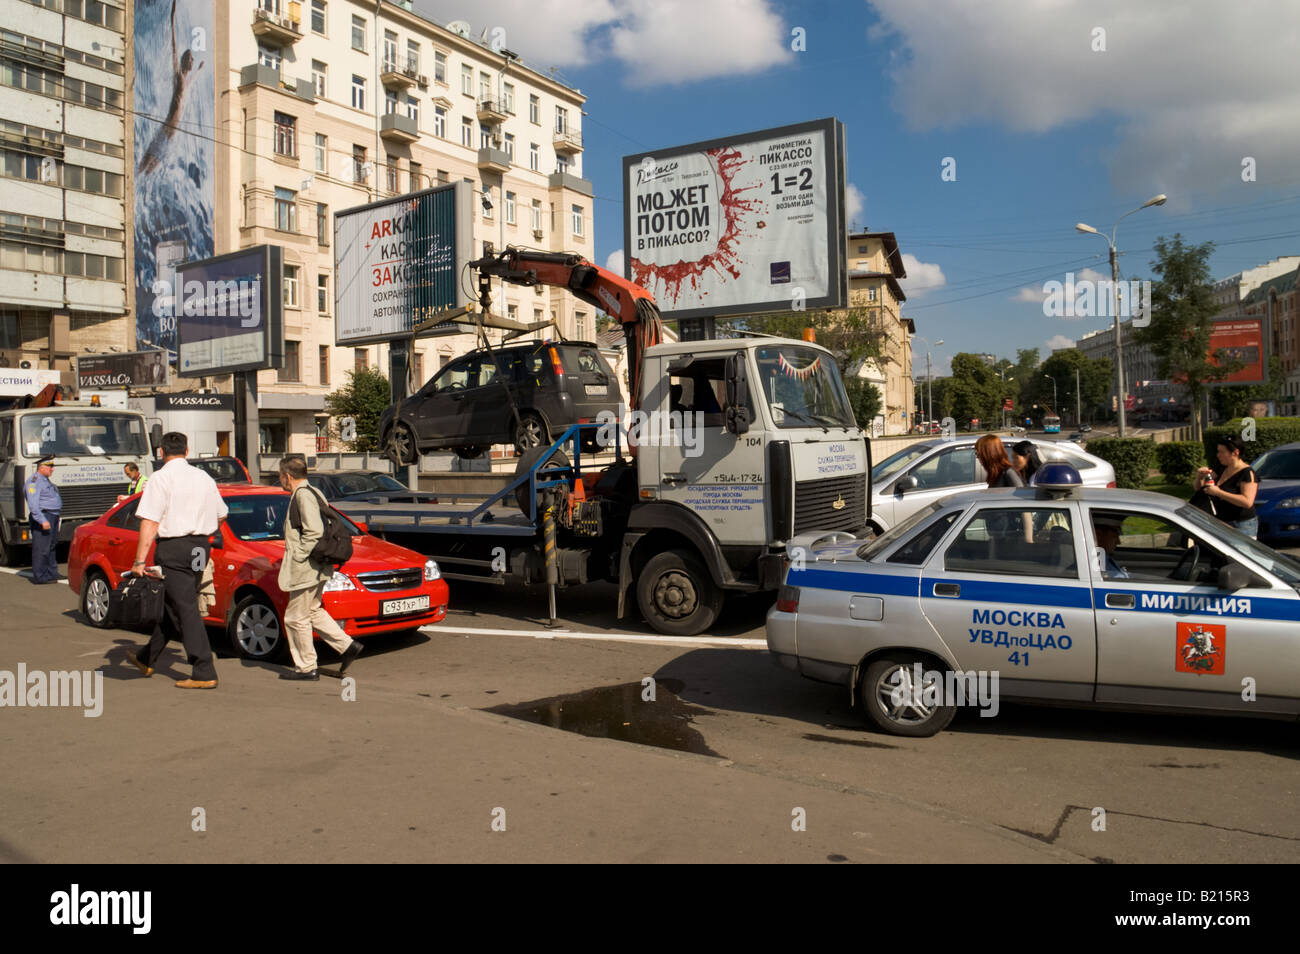 A car being towed away in Moscow (Russia) - Stock Image